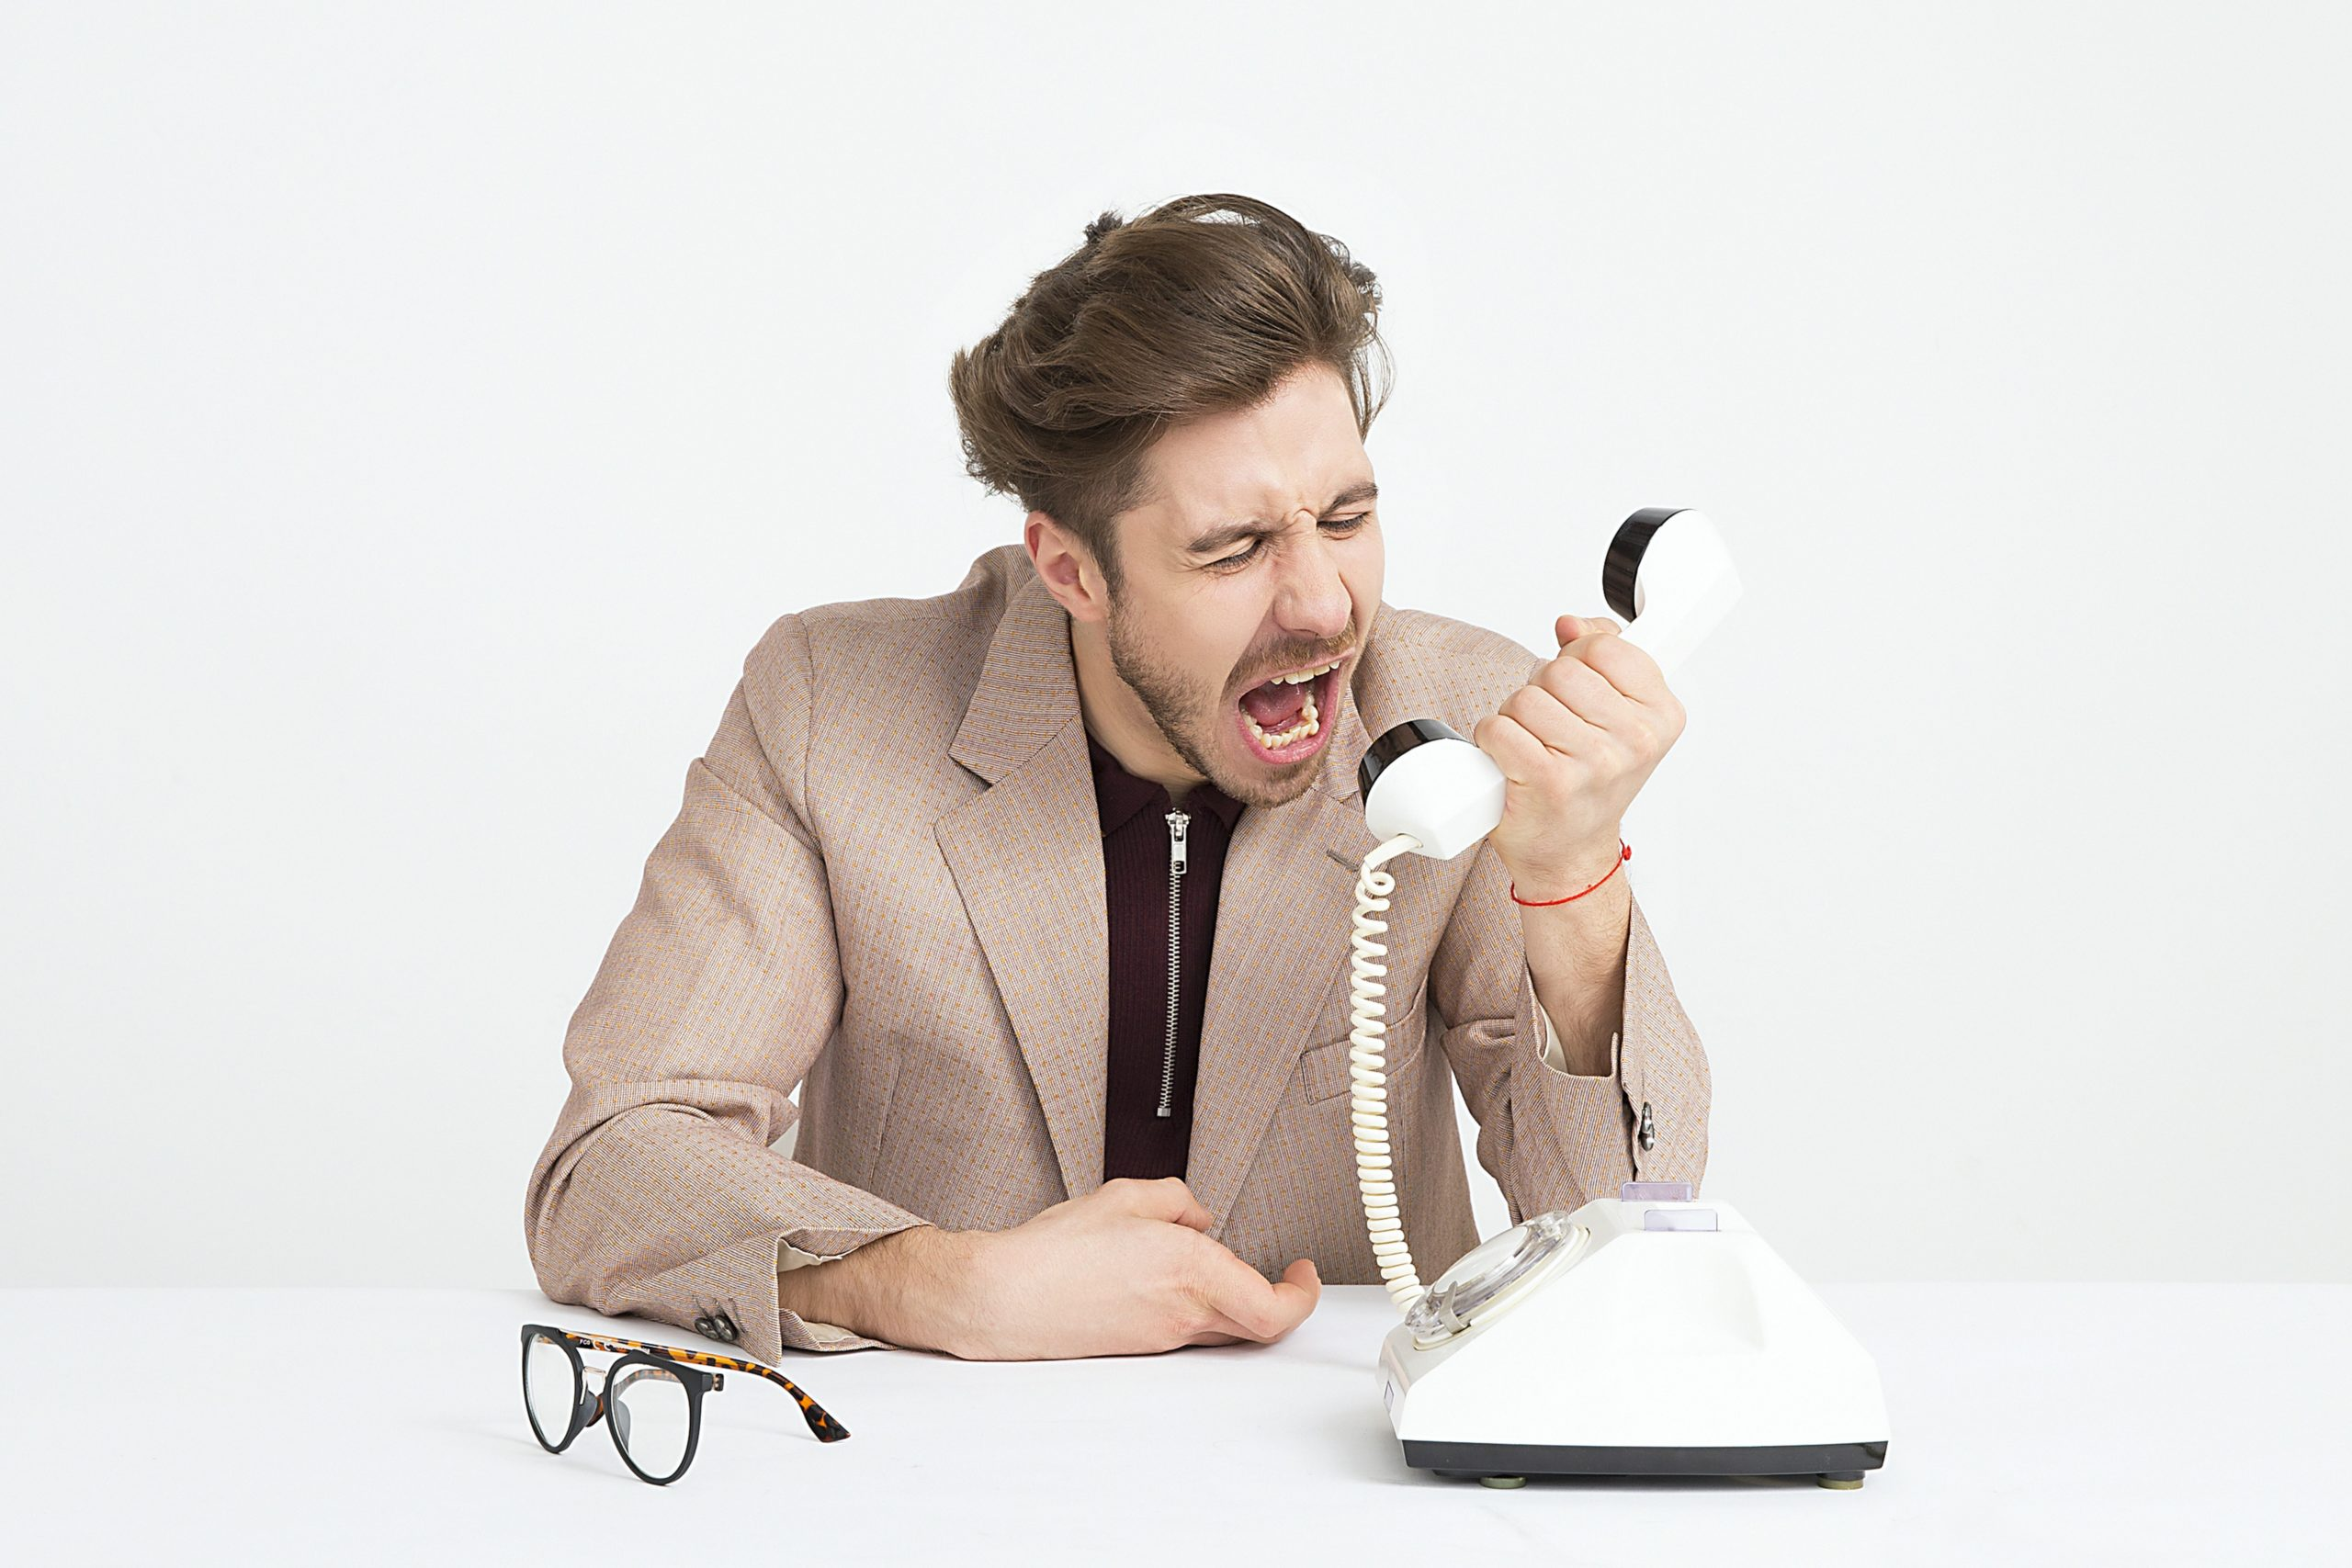 poor customer support is a freelancer mistake